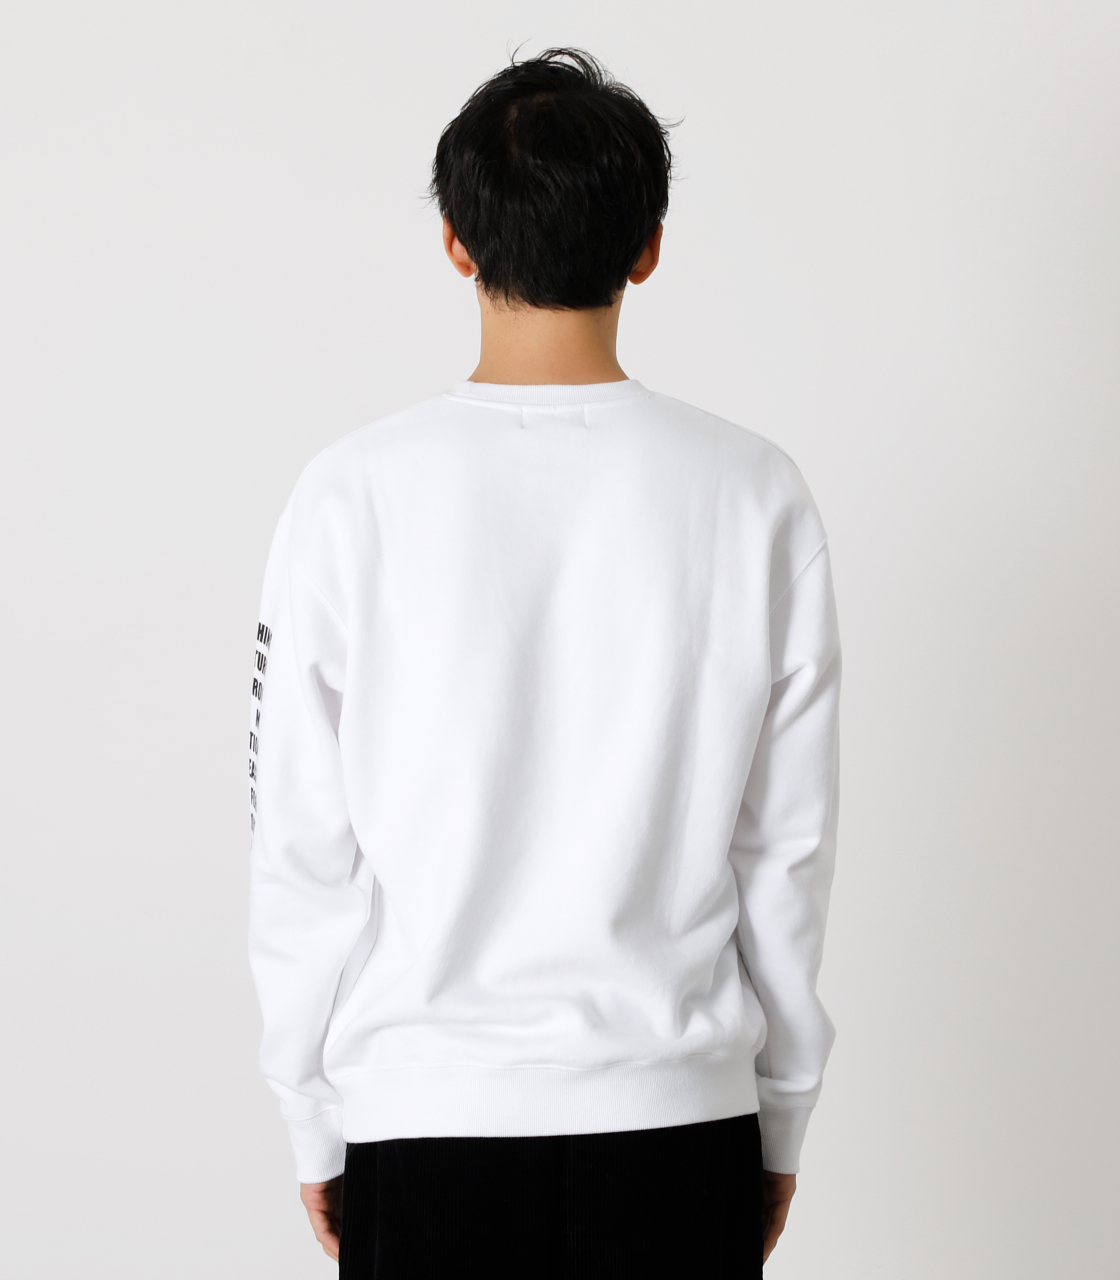 ONE ARM MESSAGE PULLOVER/ワンアームメッセージプルオーバー 詳細画像 WHT 7